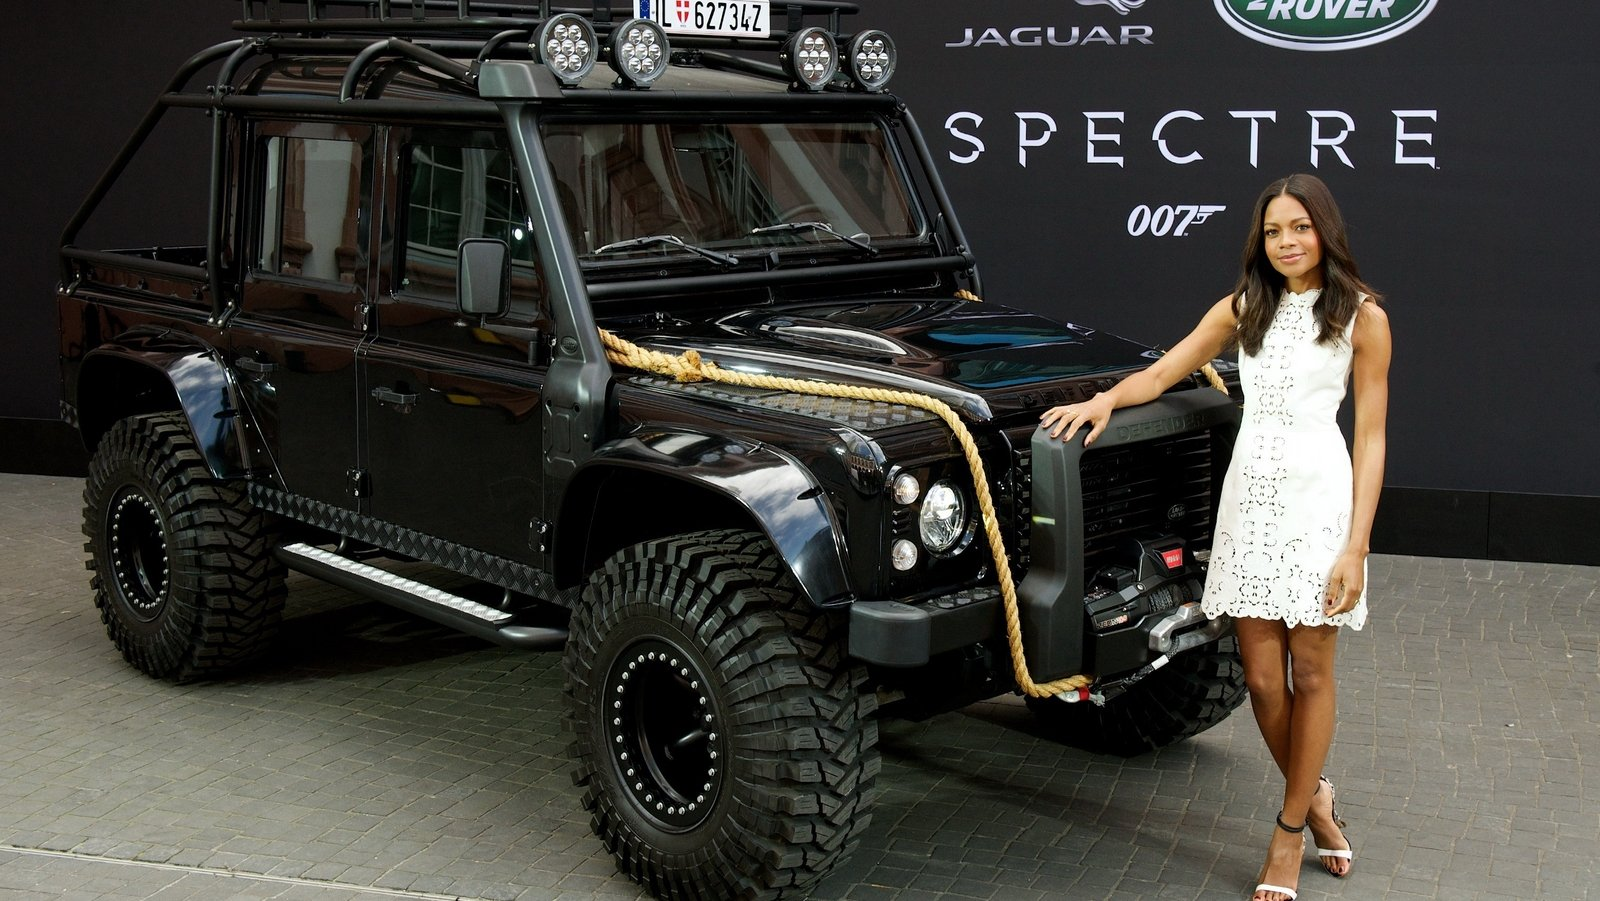 2015 Land Rover Defender Spectre Stunt Car - Picture 646752 | truck review @ Top Speed